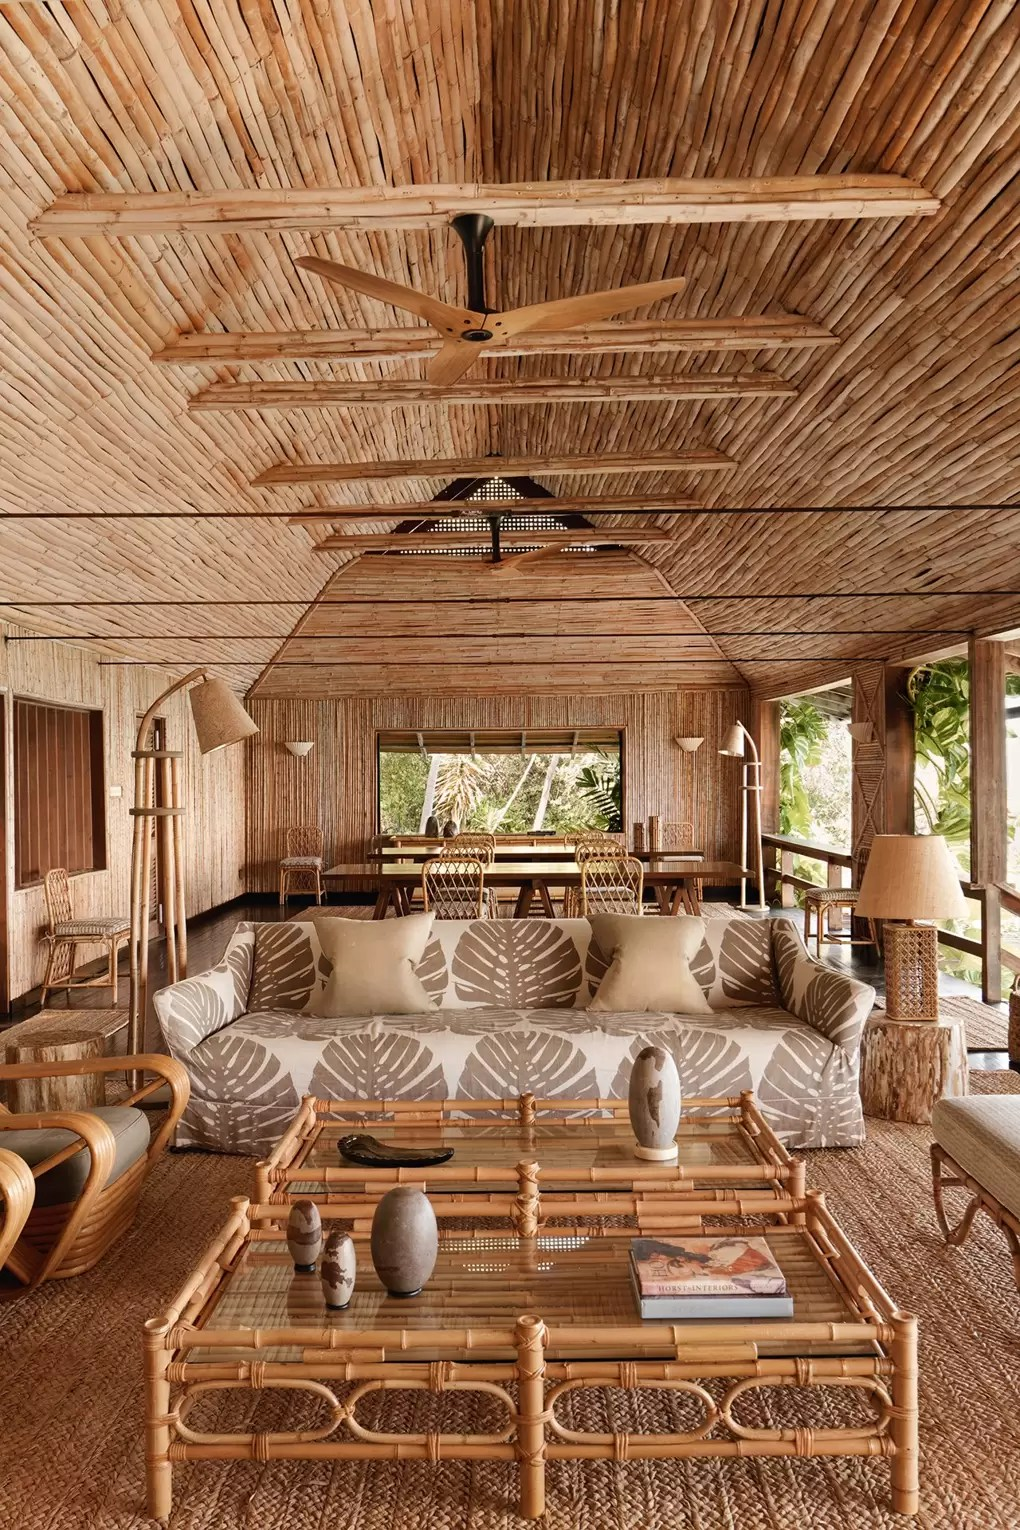 Low Cost Bamboo House Design : bamboo, house, design, Bamboo, Beach, House, Mustique, Designed, Veere, Grenney, Garden